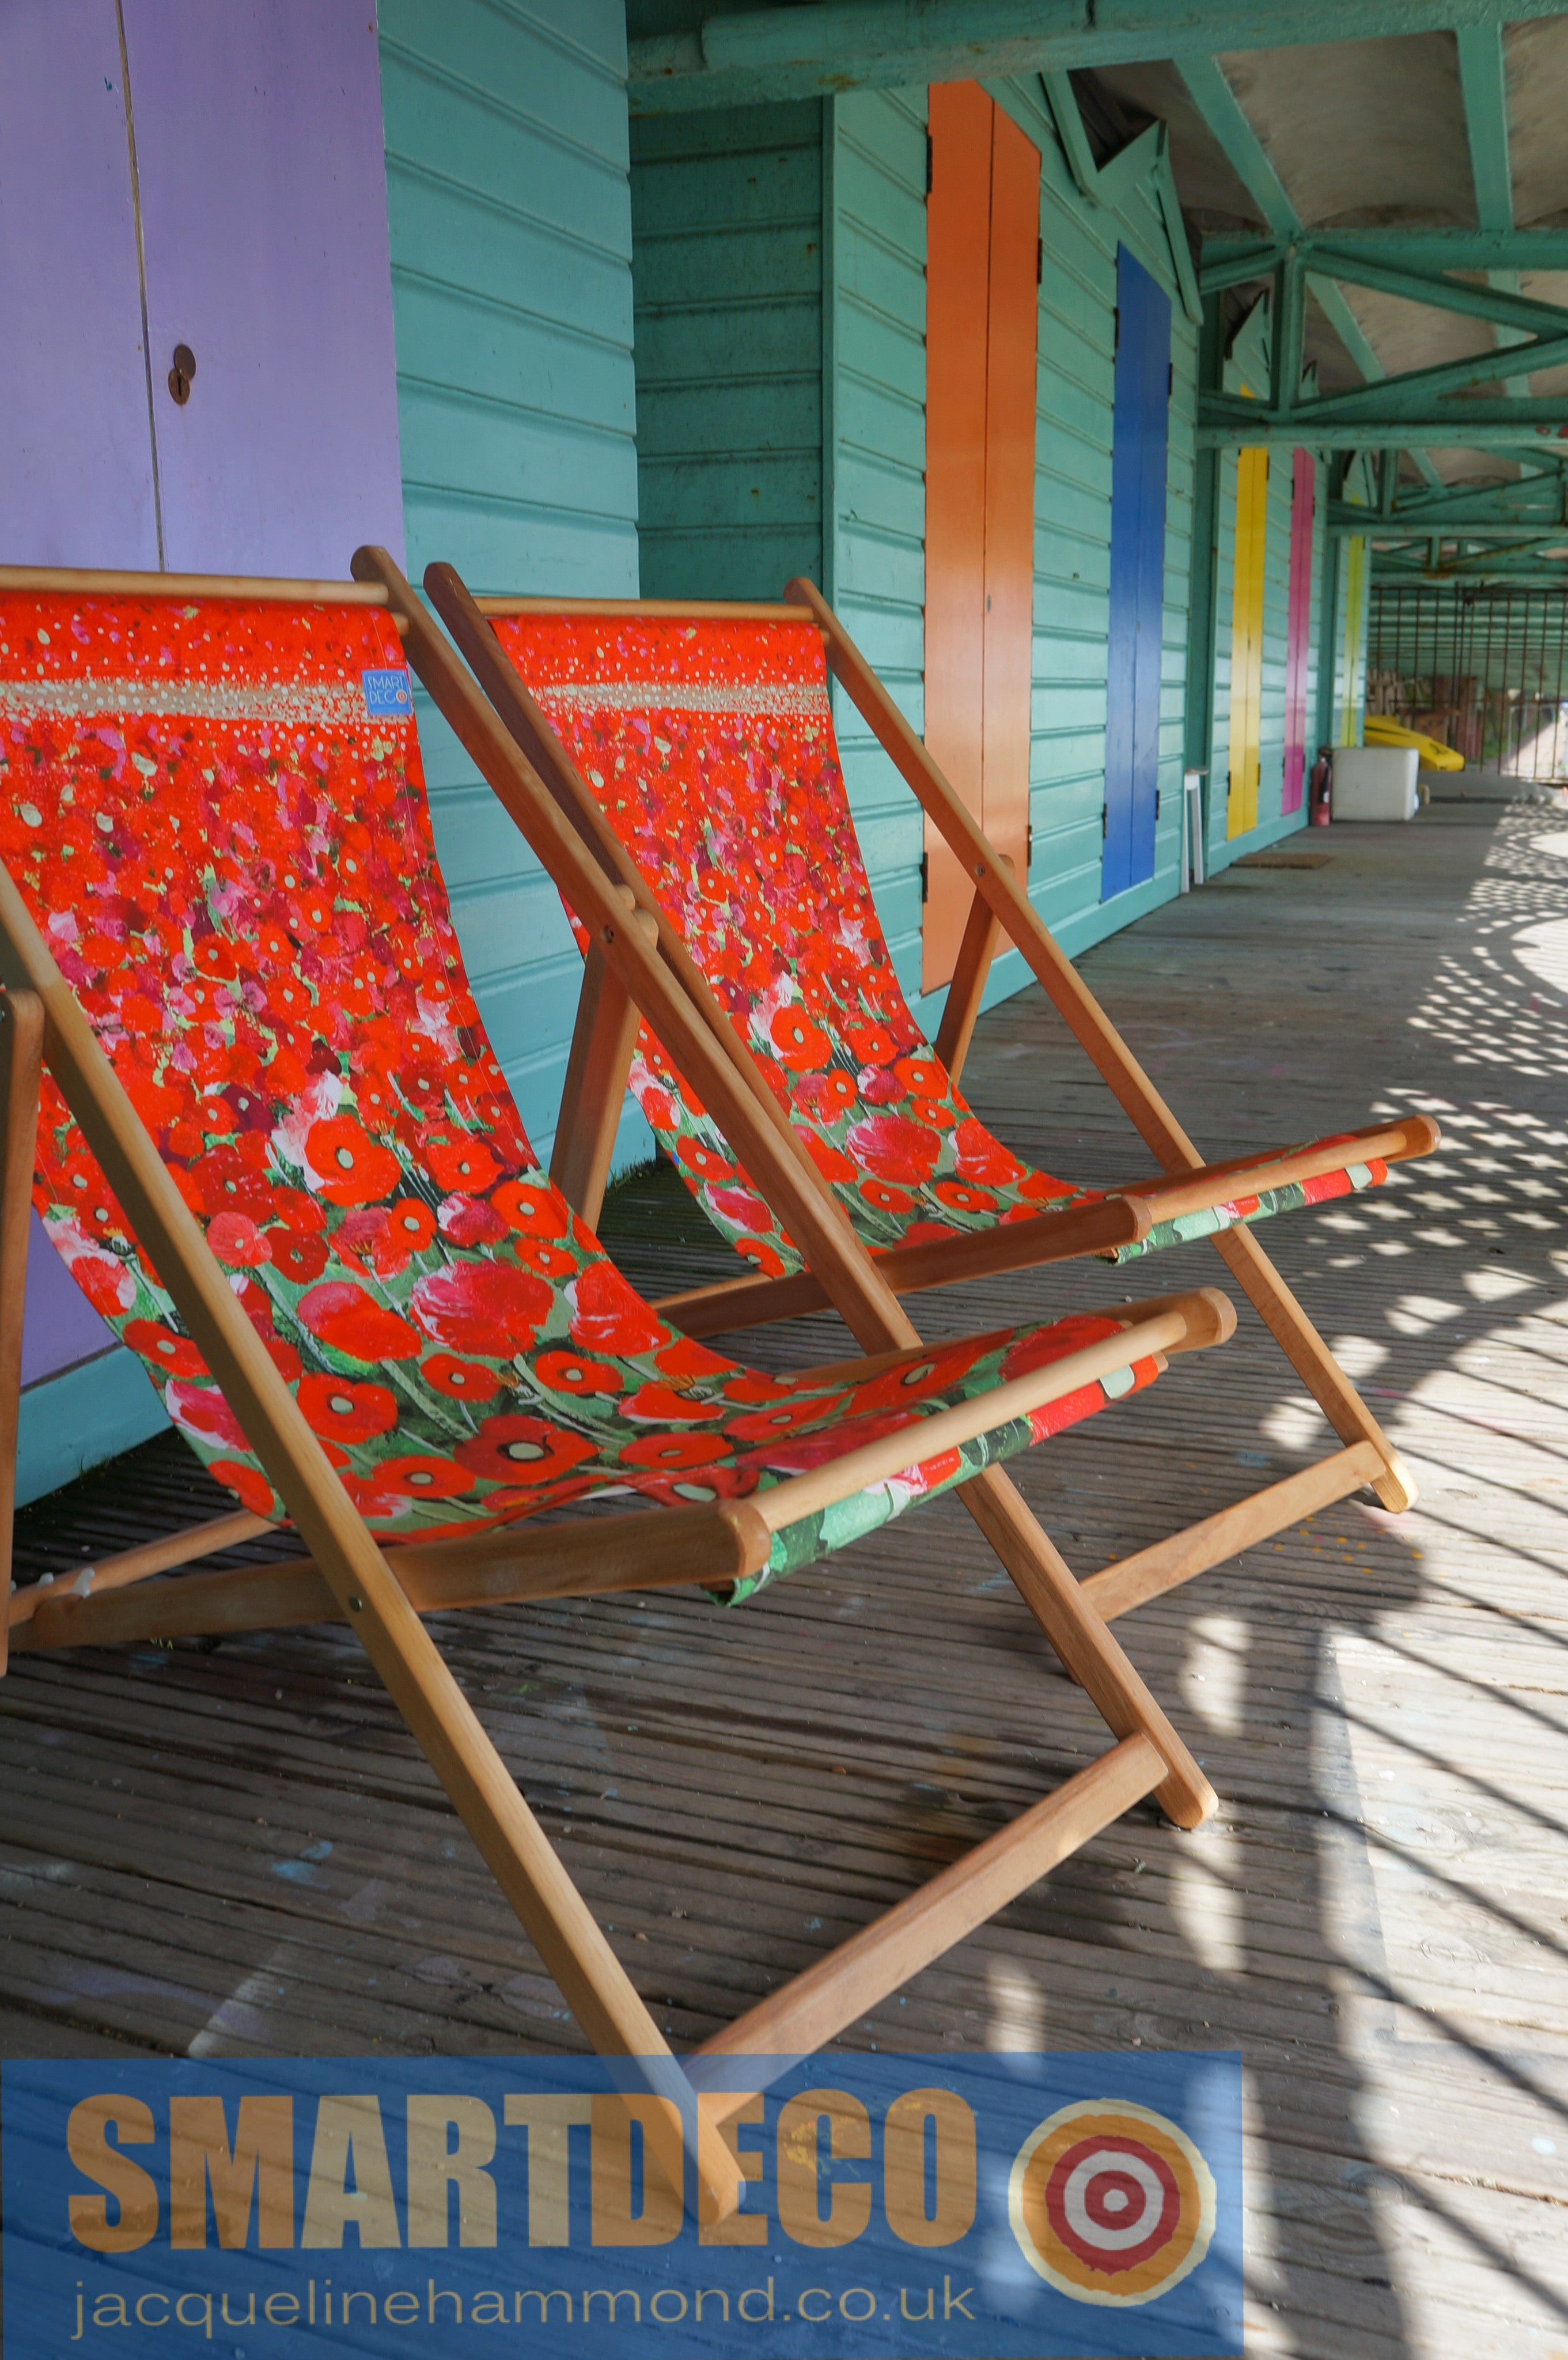 Poppy Art Print deckchair by Jacqueline Hammond